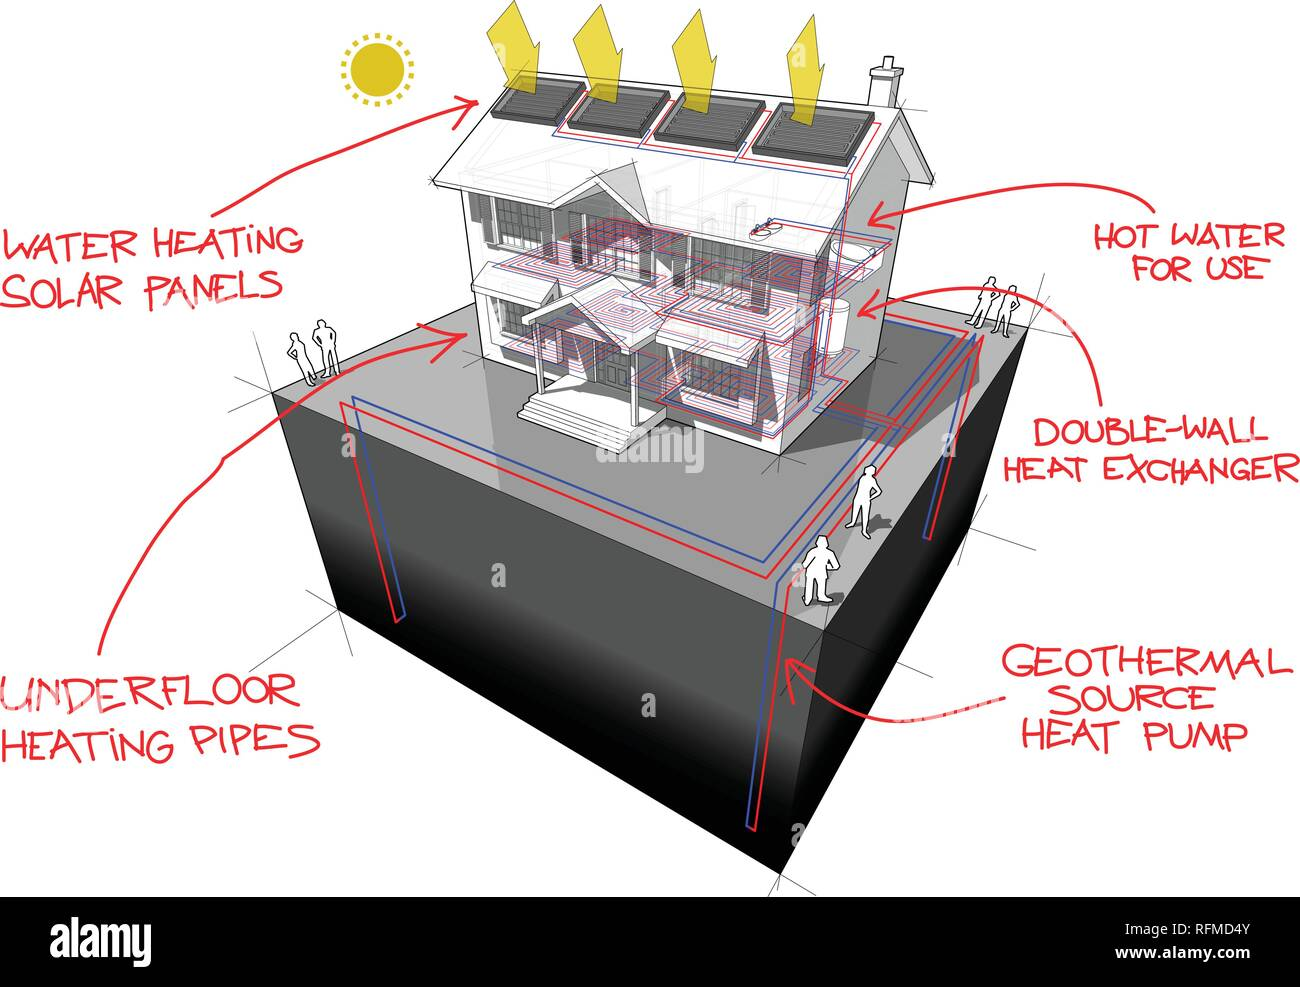 diagram of a classic colonial house with ground source heat pump with 4 wells as source of energy for heating and floor heating and solar panels on th - Stock Vector